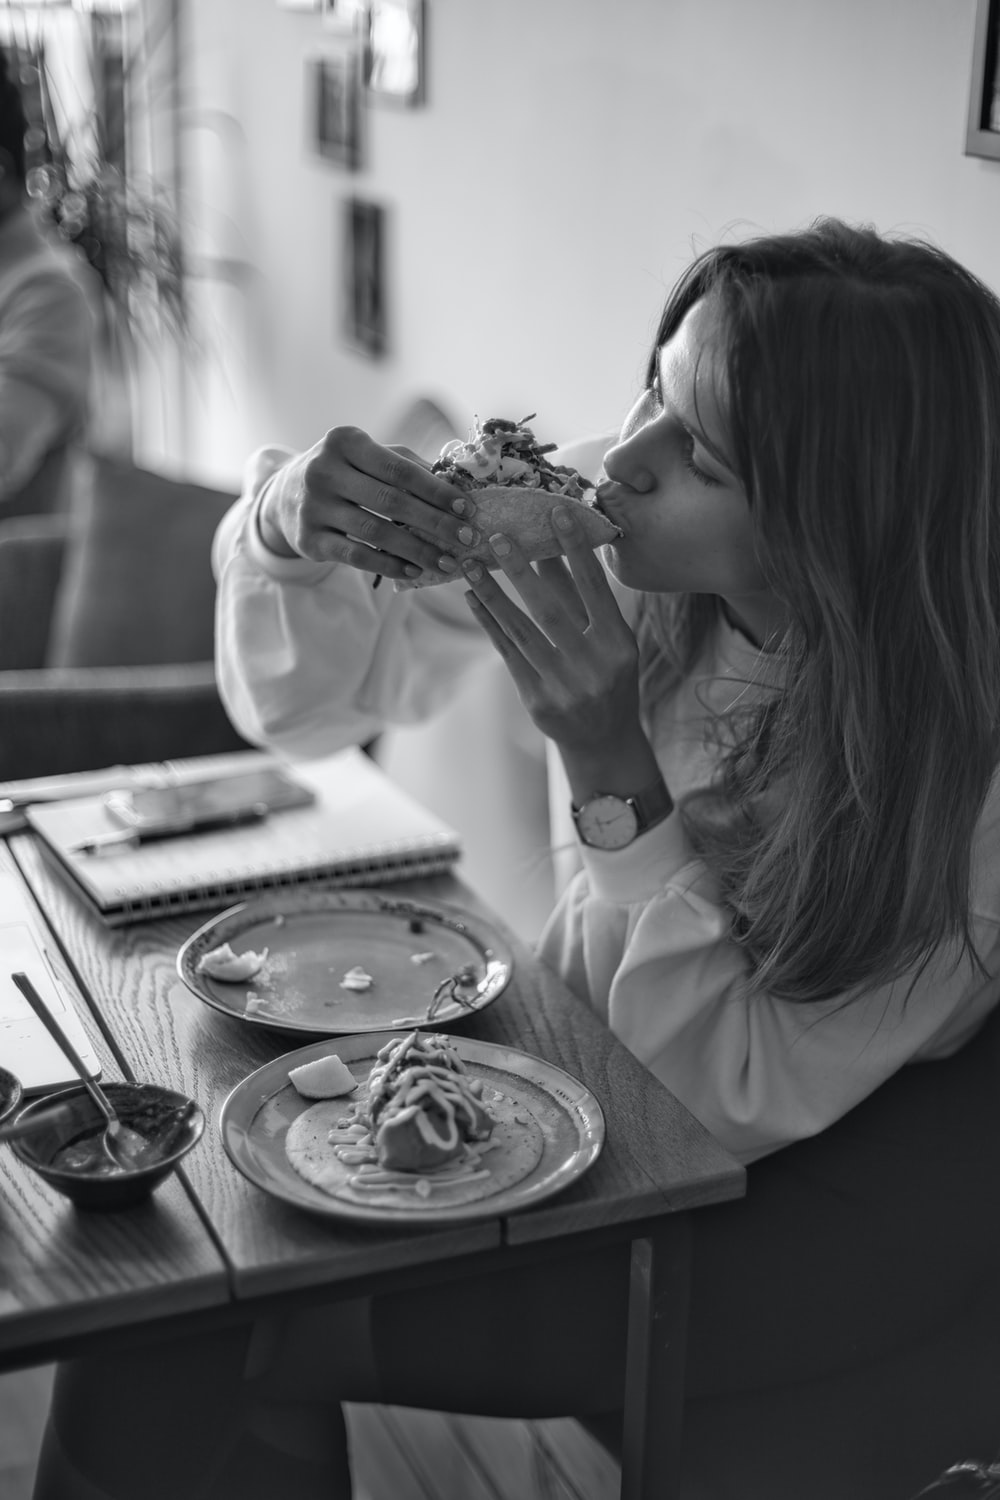 grayscale photo of woman eating